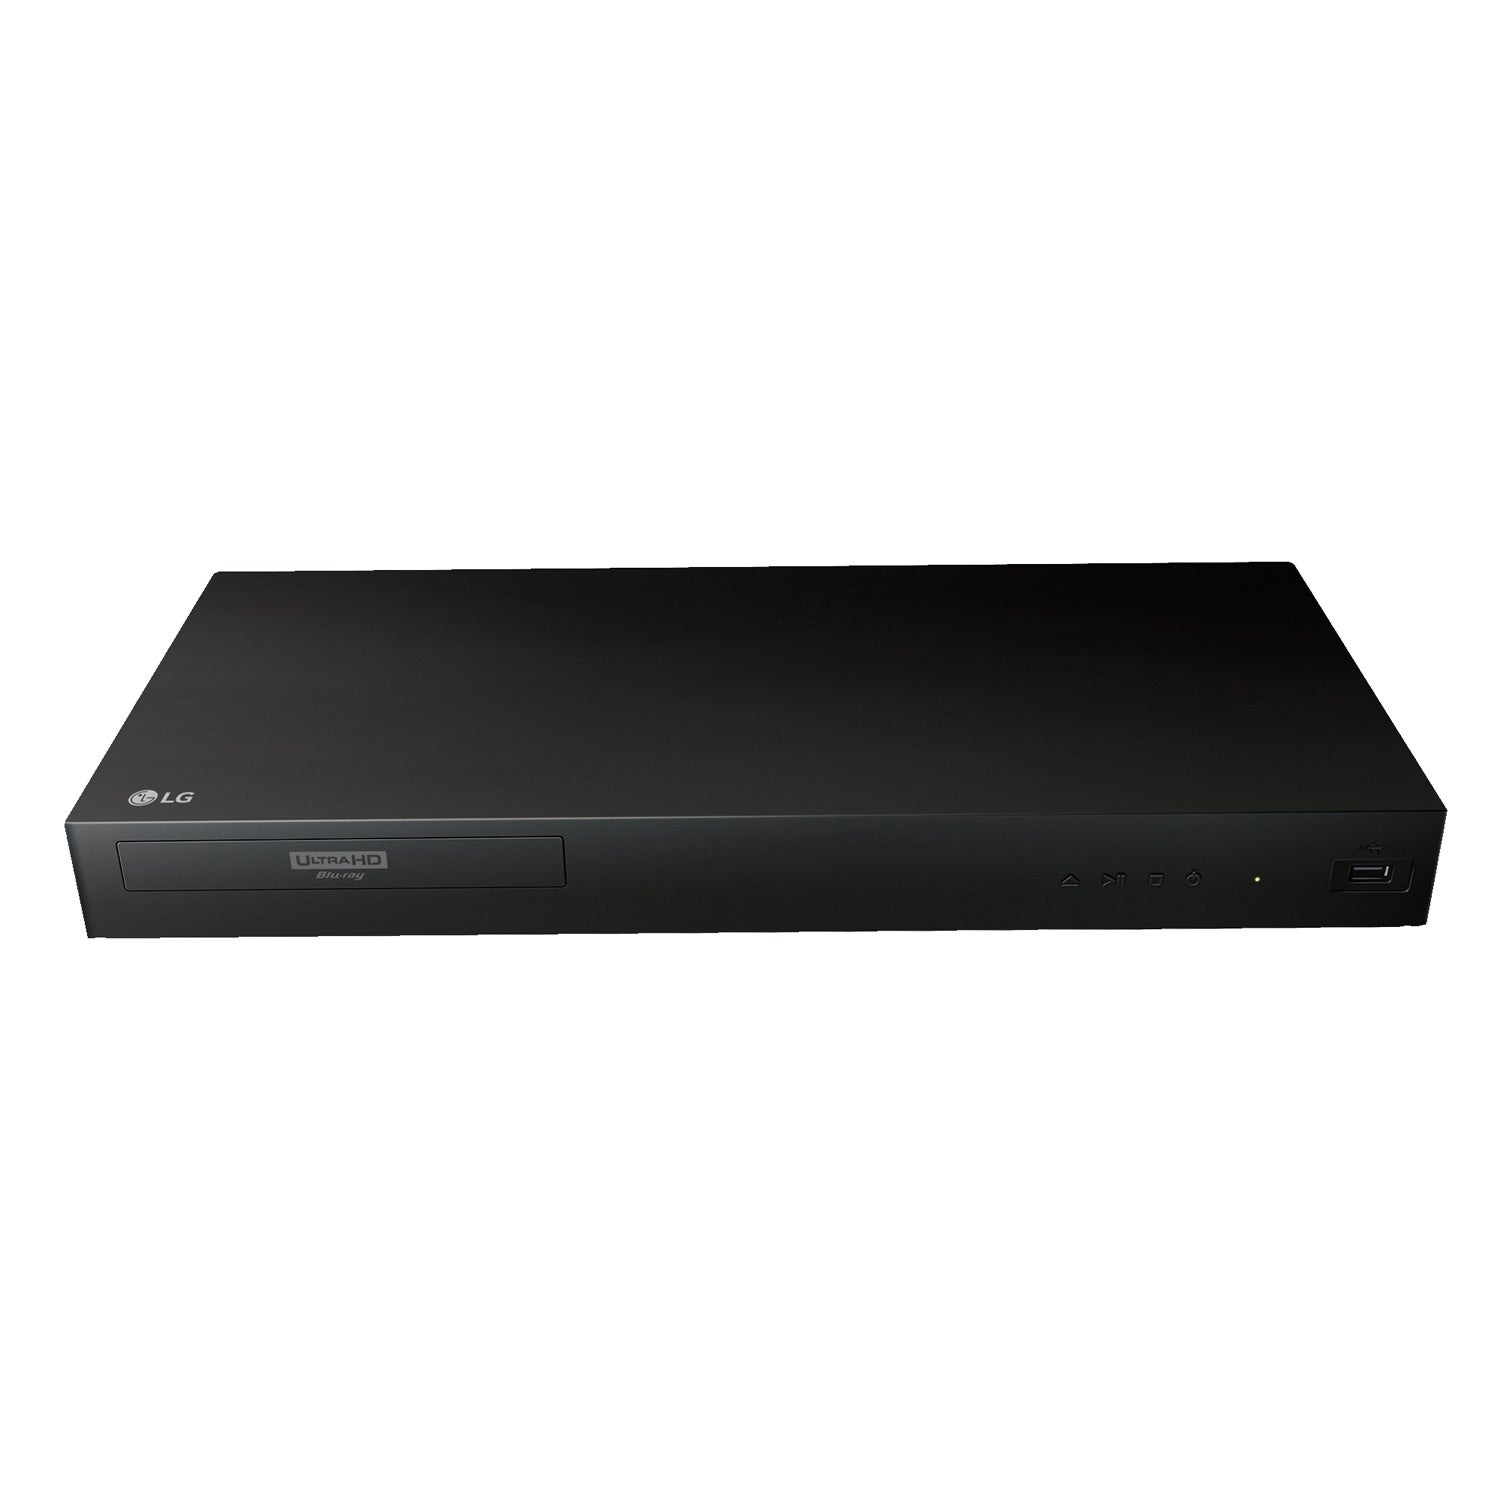 LG UP870 4K Ultra HD Blu-ray Disc™ Player with HDR Compat...